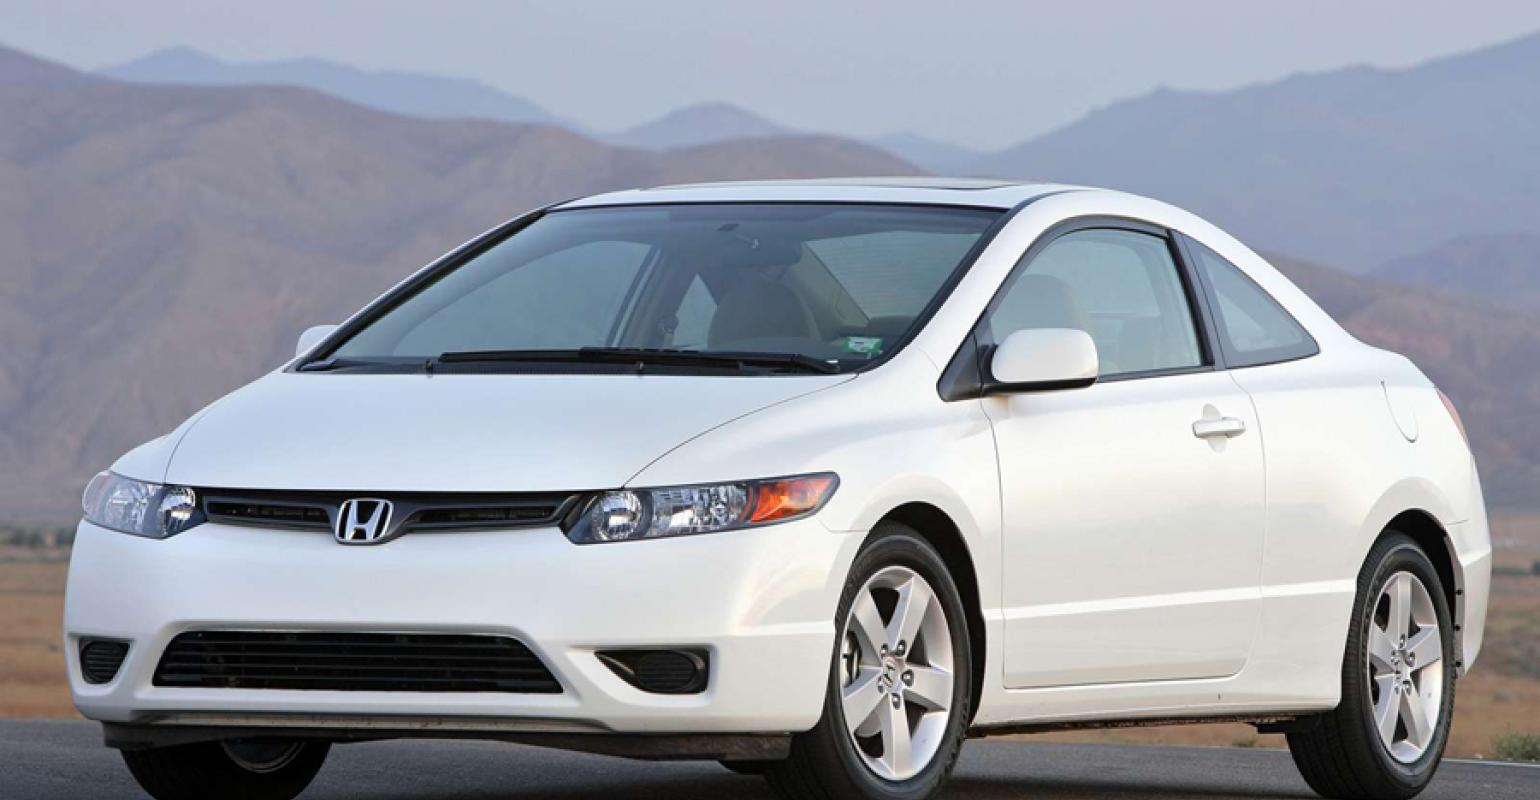 Honda Civic Owner S Court Win Could Change Mpg Testing